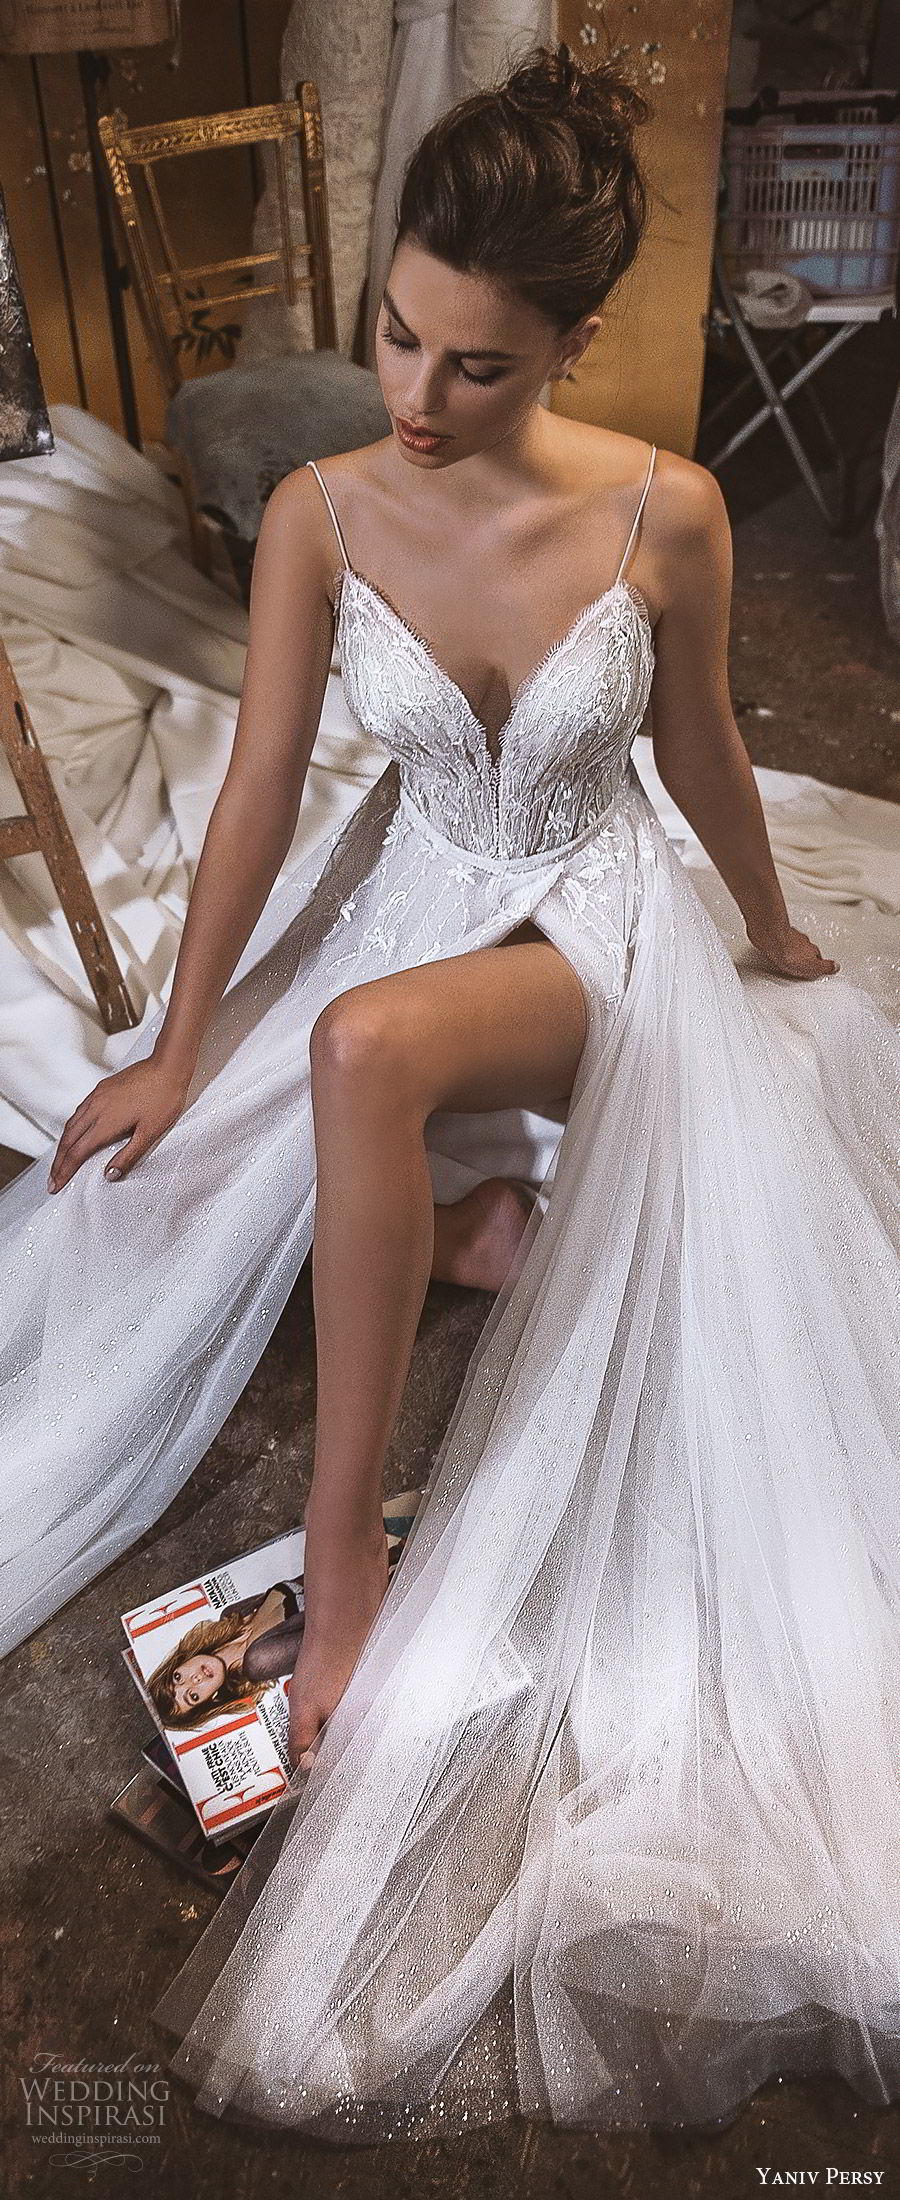 yaniv persy fall 2019 lavish bridal sleevless thin straps sweetheart neckline beaded bodice a line wedding dress slit skirt romantic sexy glitzy (3) lv